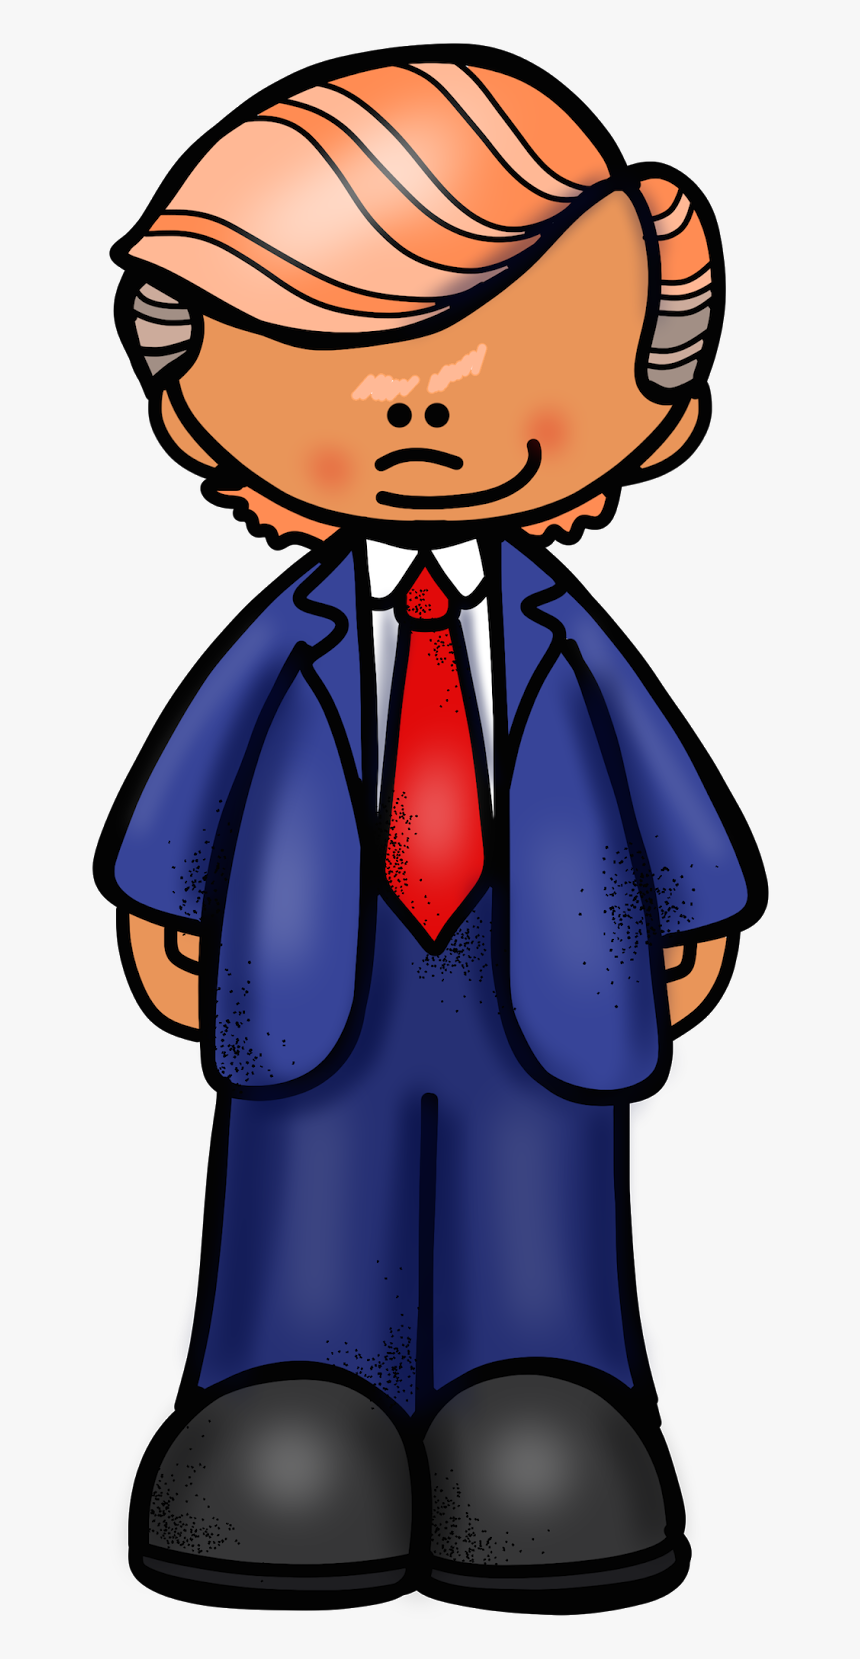 Transparent Presidents Day Clipart - Black And White Educlips, HD Png Download, Free Download